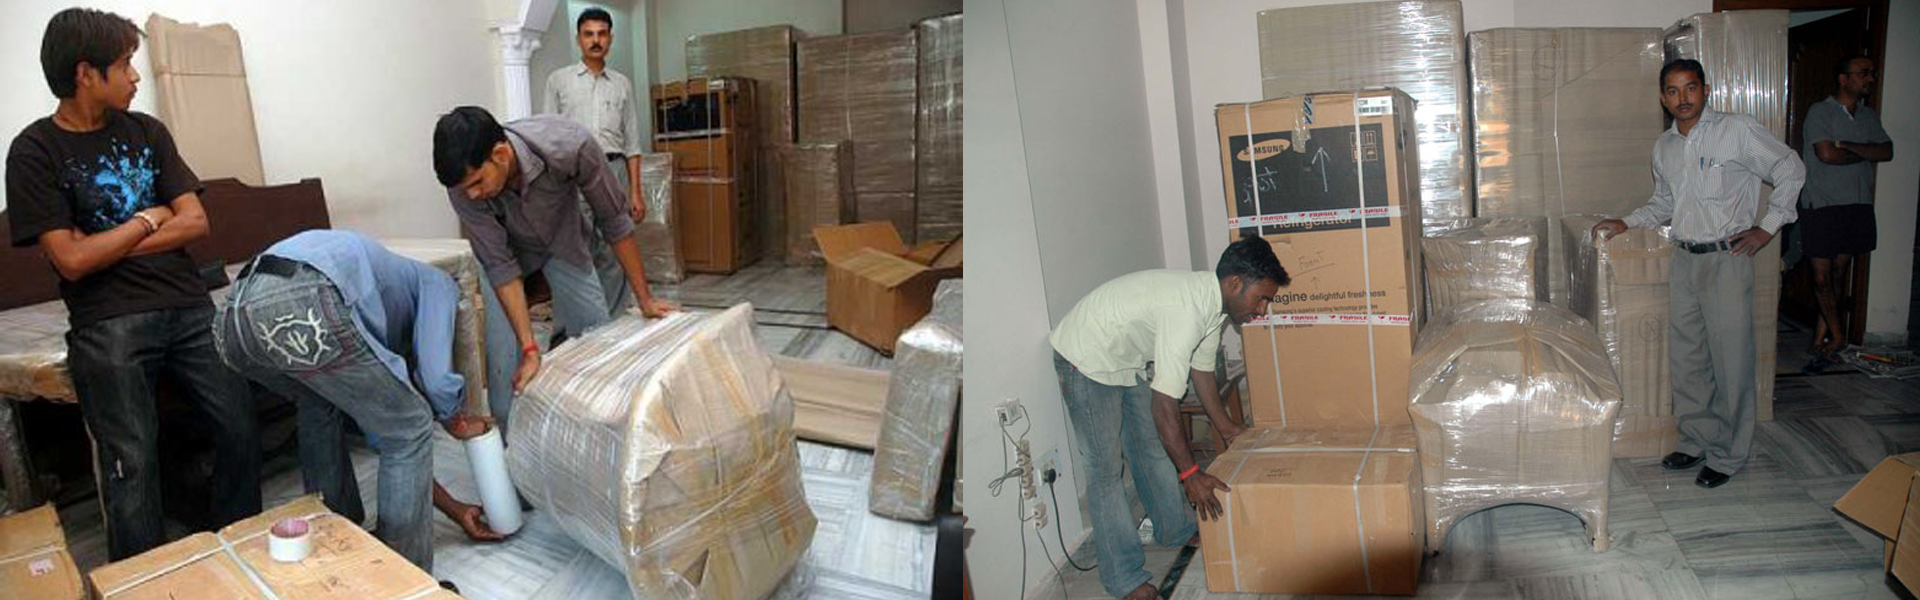 We Provide Best Packing Service Packing Services Moving Hacks Packing Moving Services